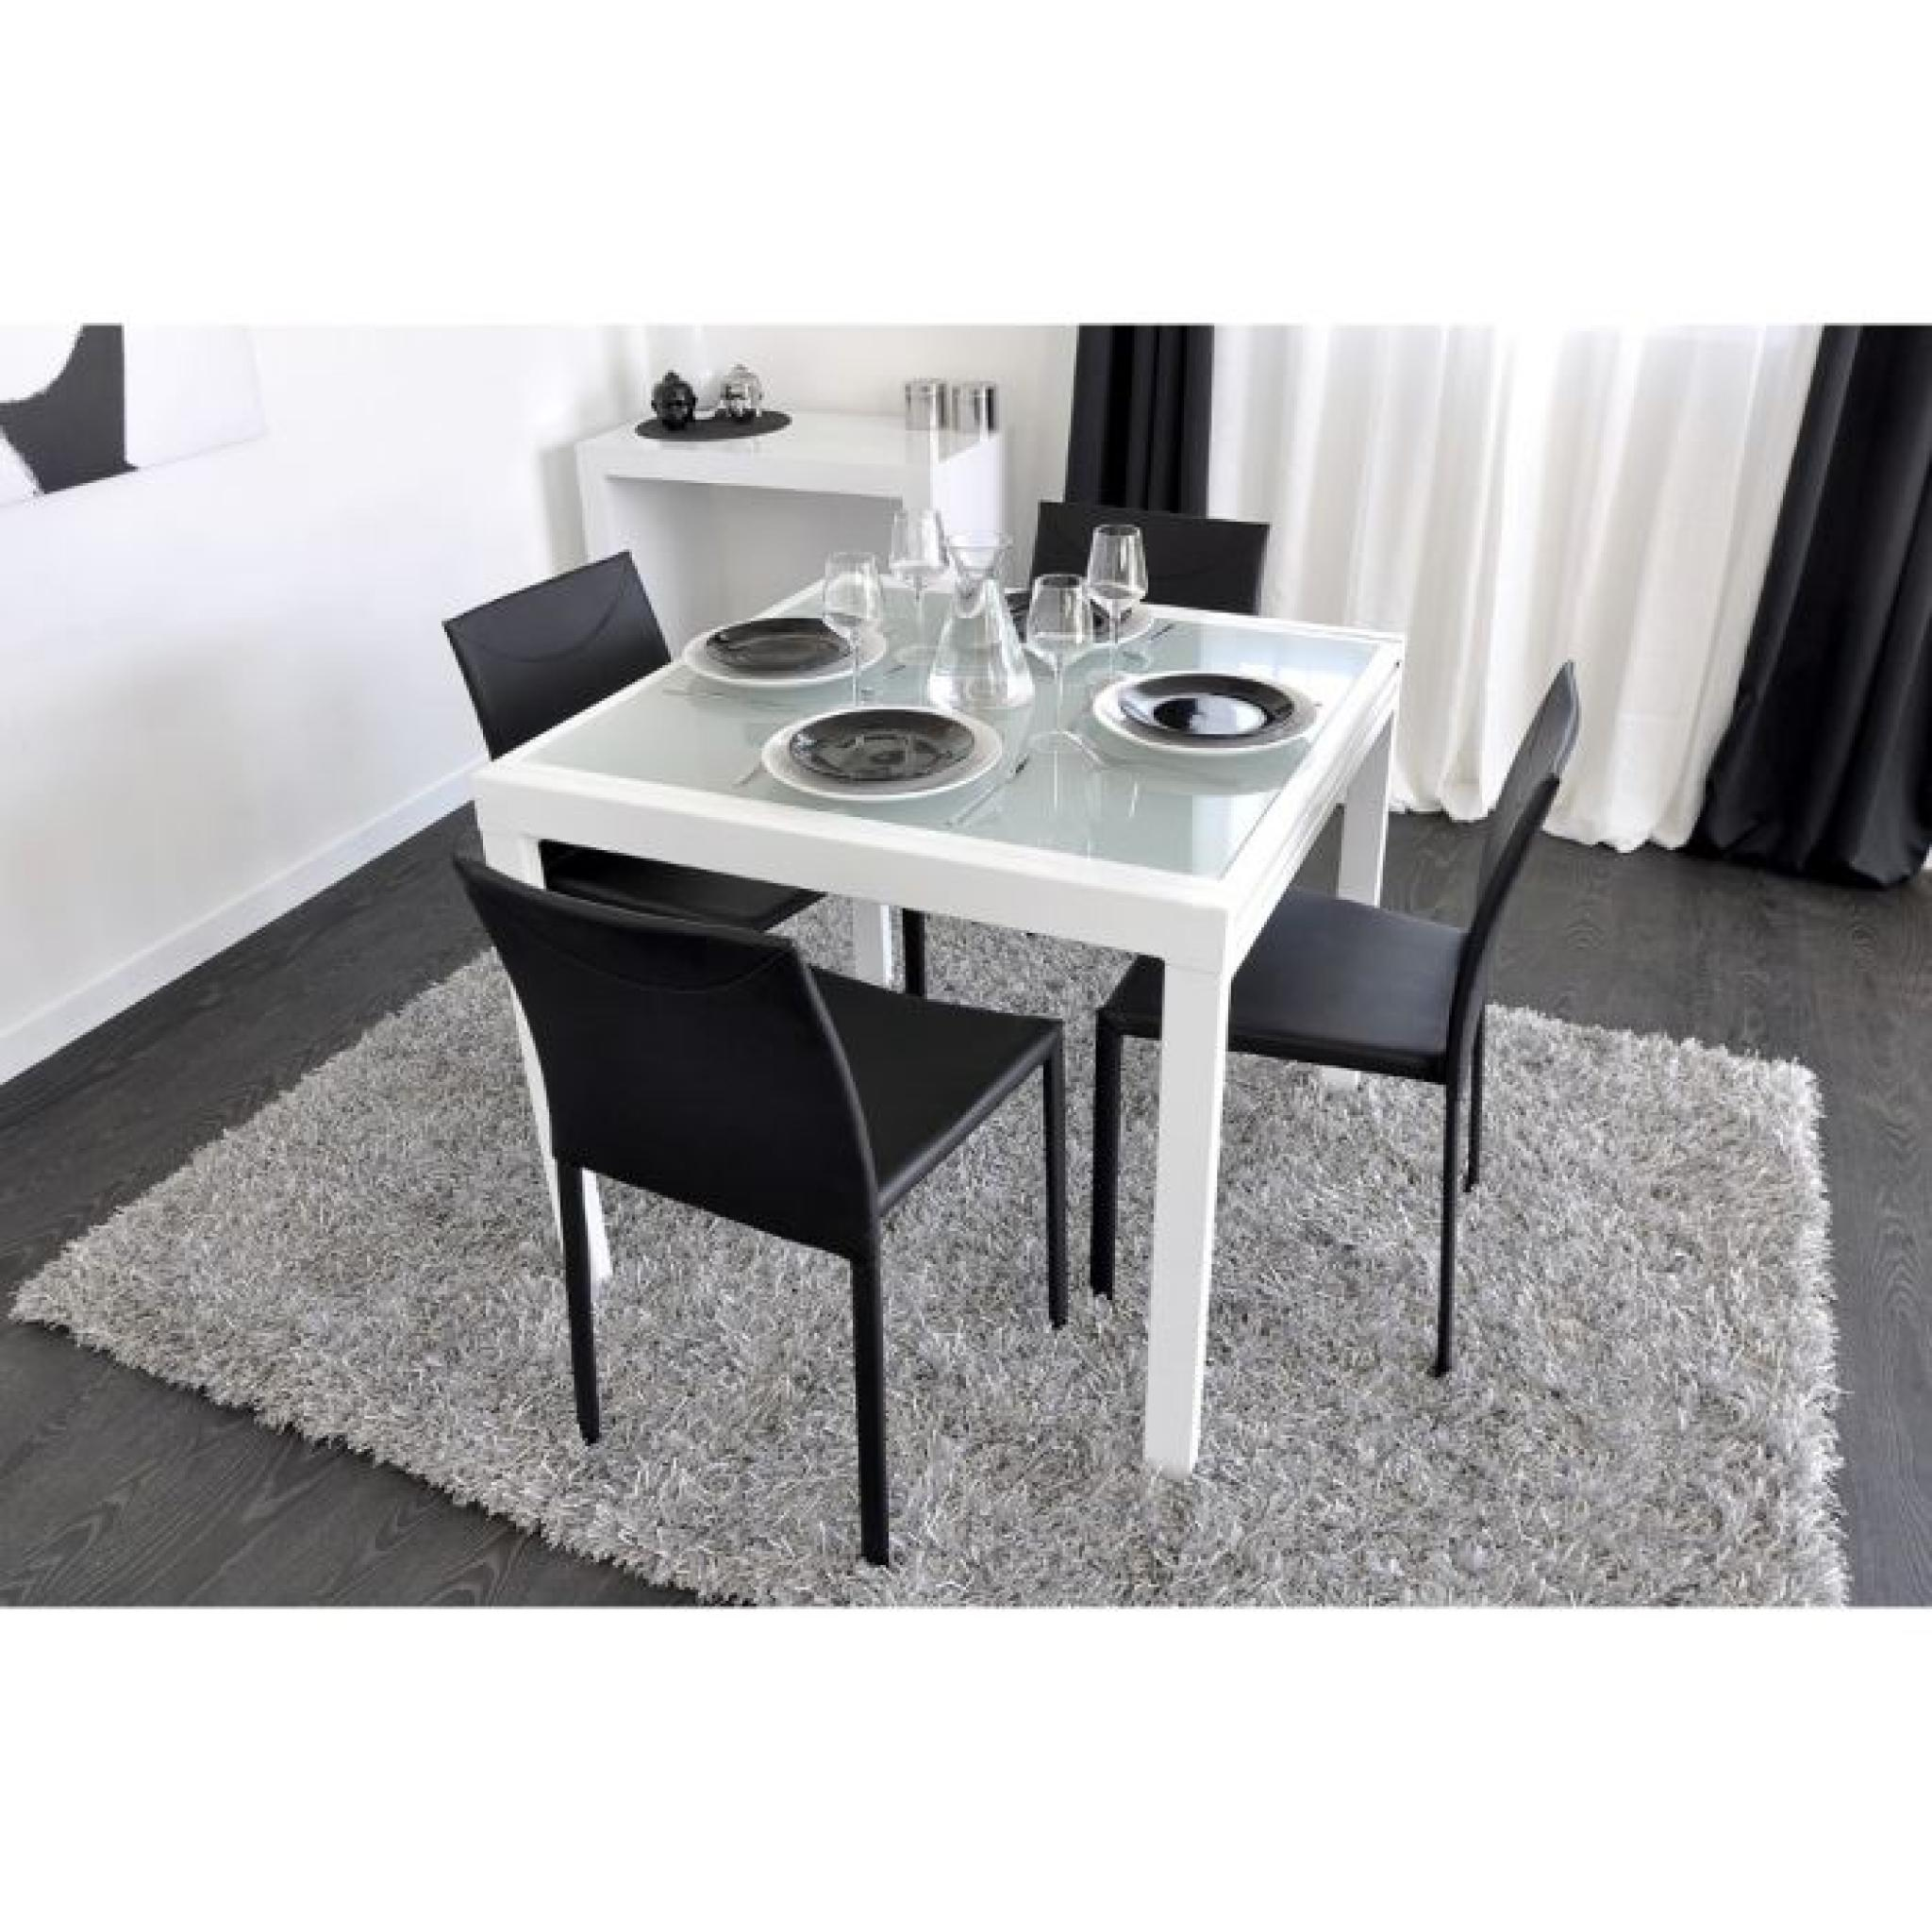 Extend table extensible blanche 90 180cm achat vente for Table salle a manger extensible blanche